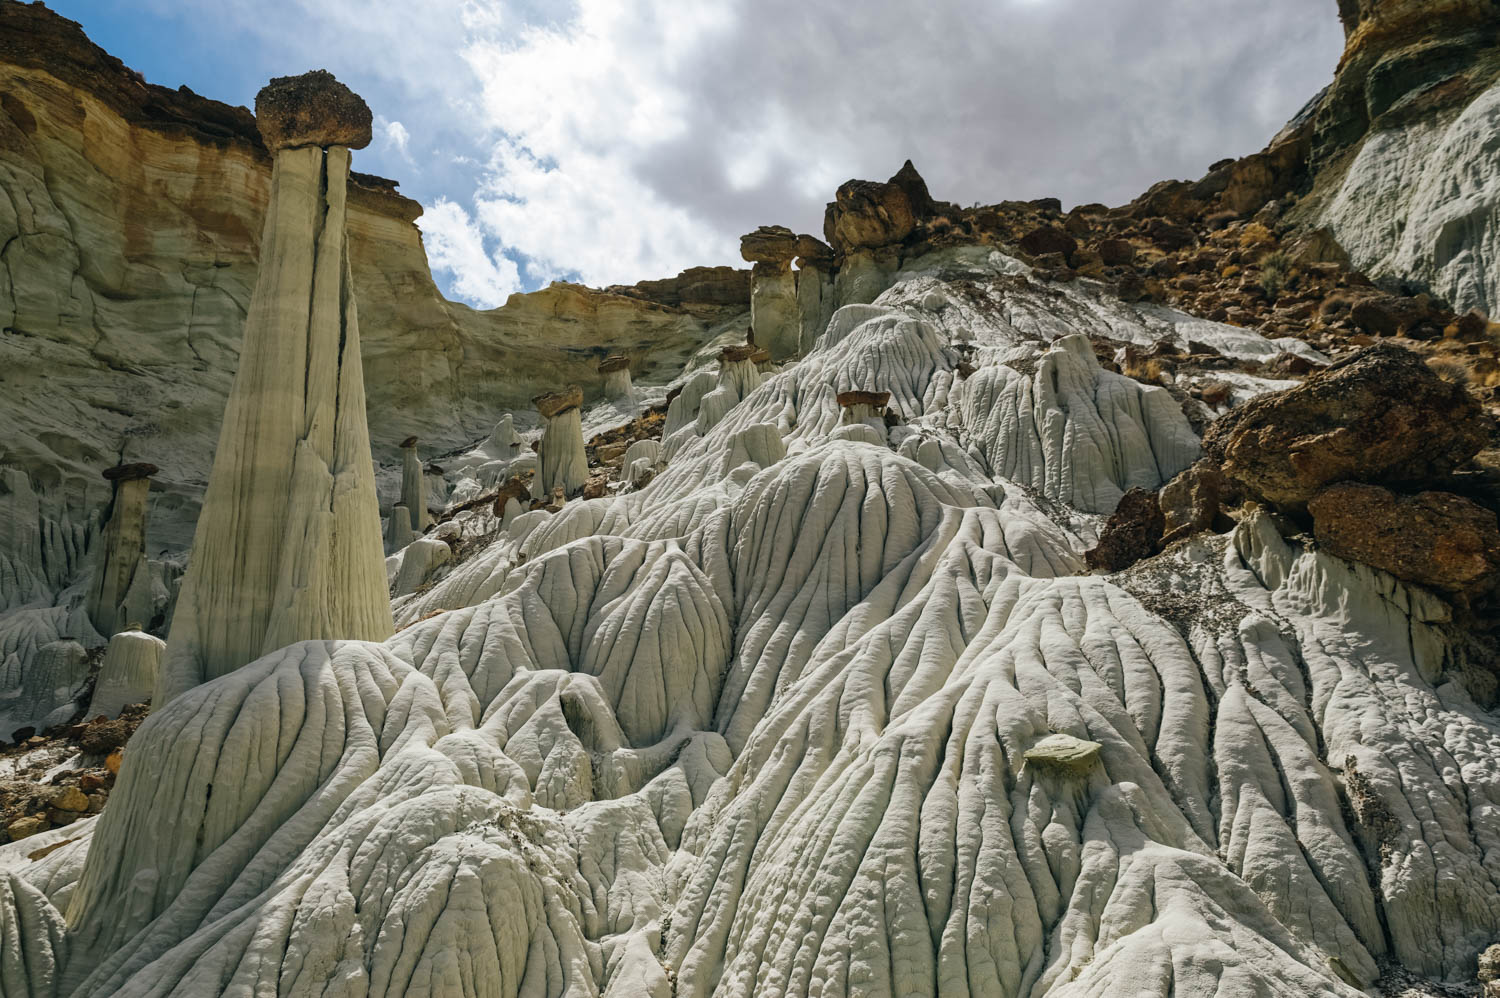 The Towers of Silence, the most stunning formatio.and truly a wonder of the geological world.